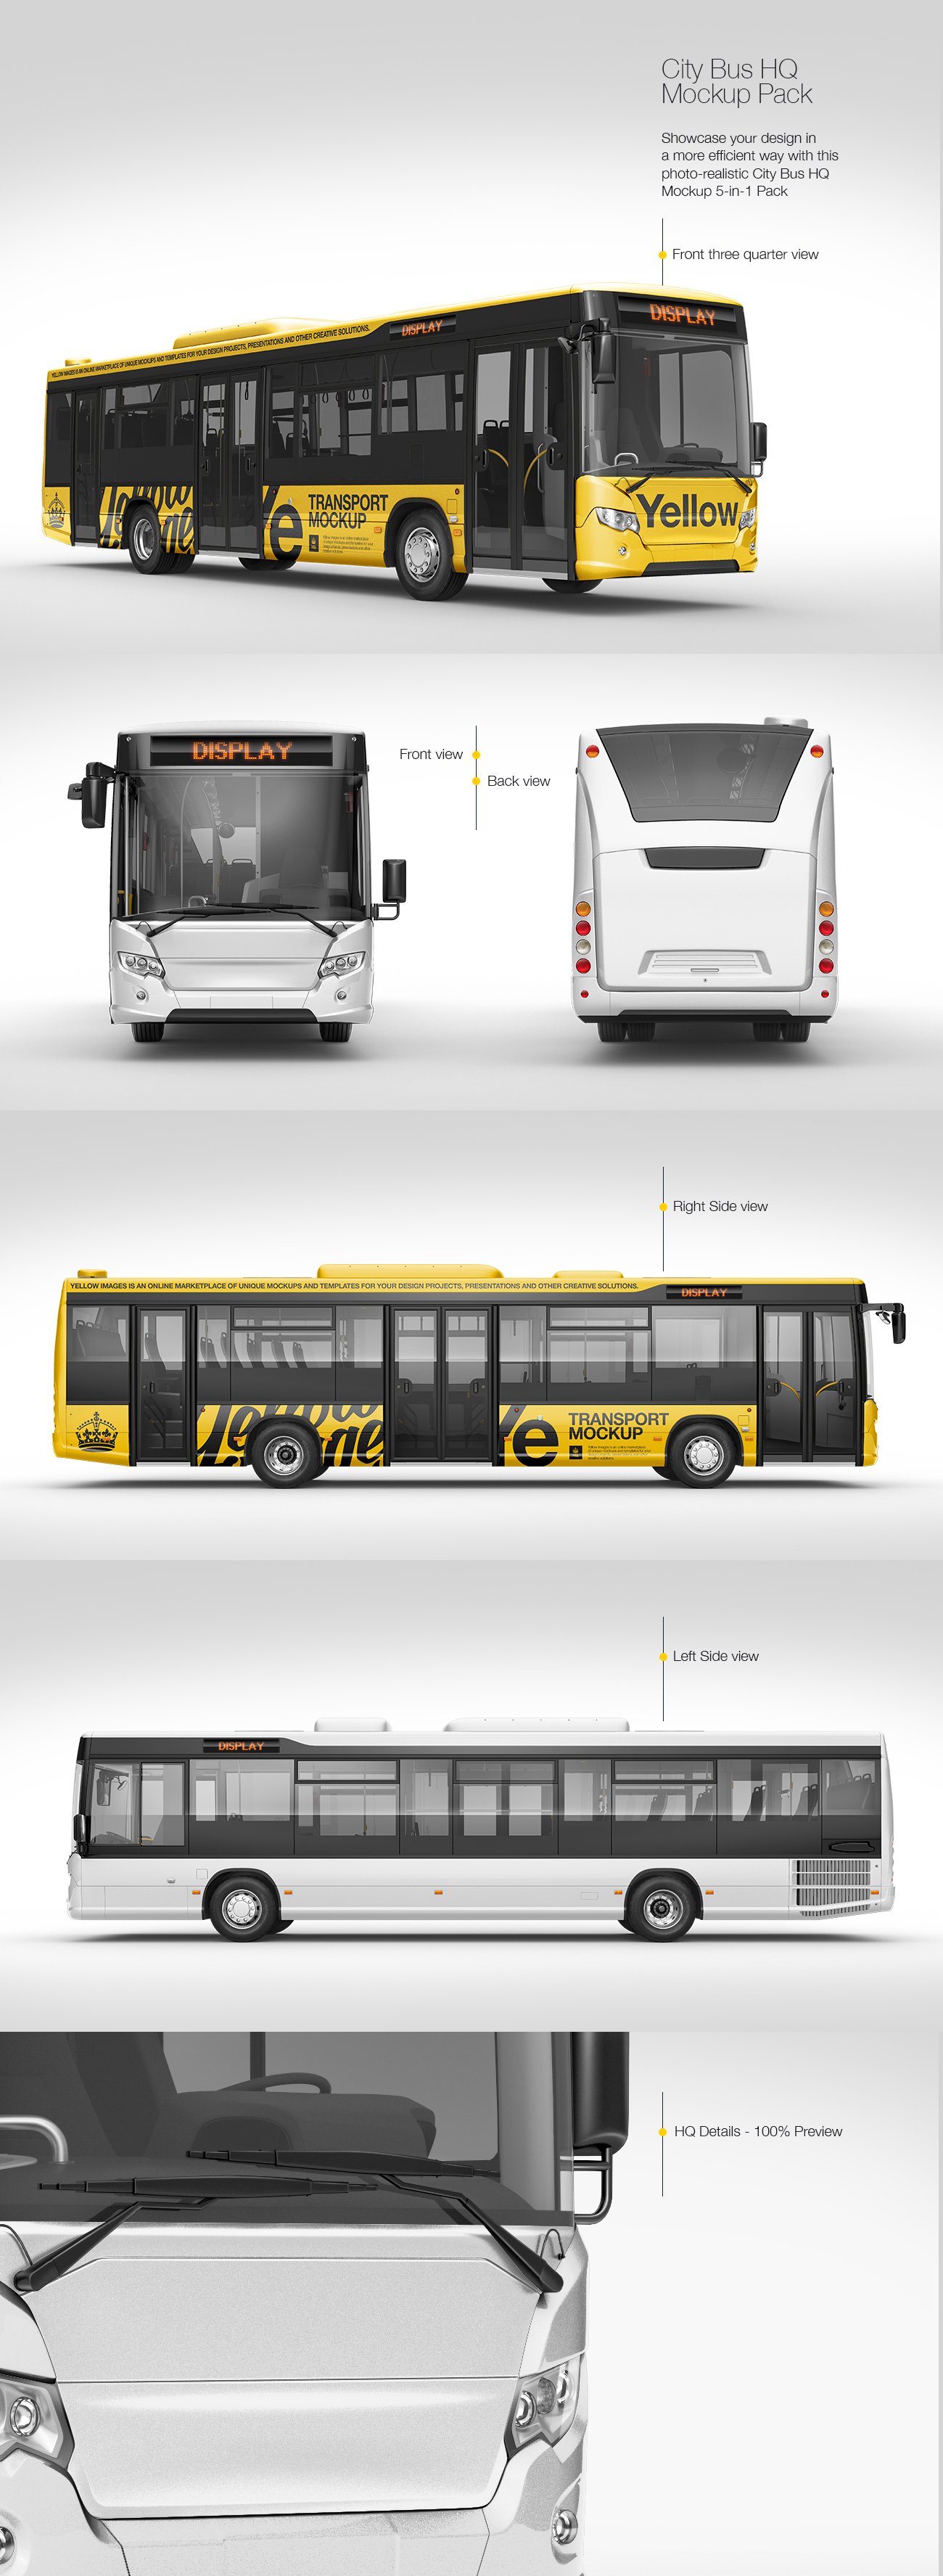 City Bus HQ Mockup Pack